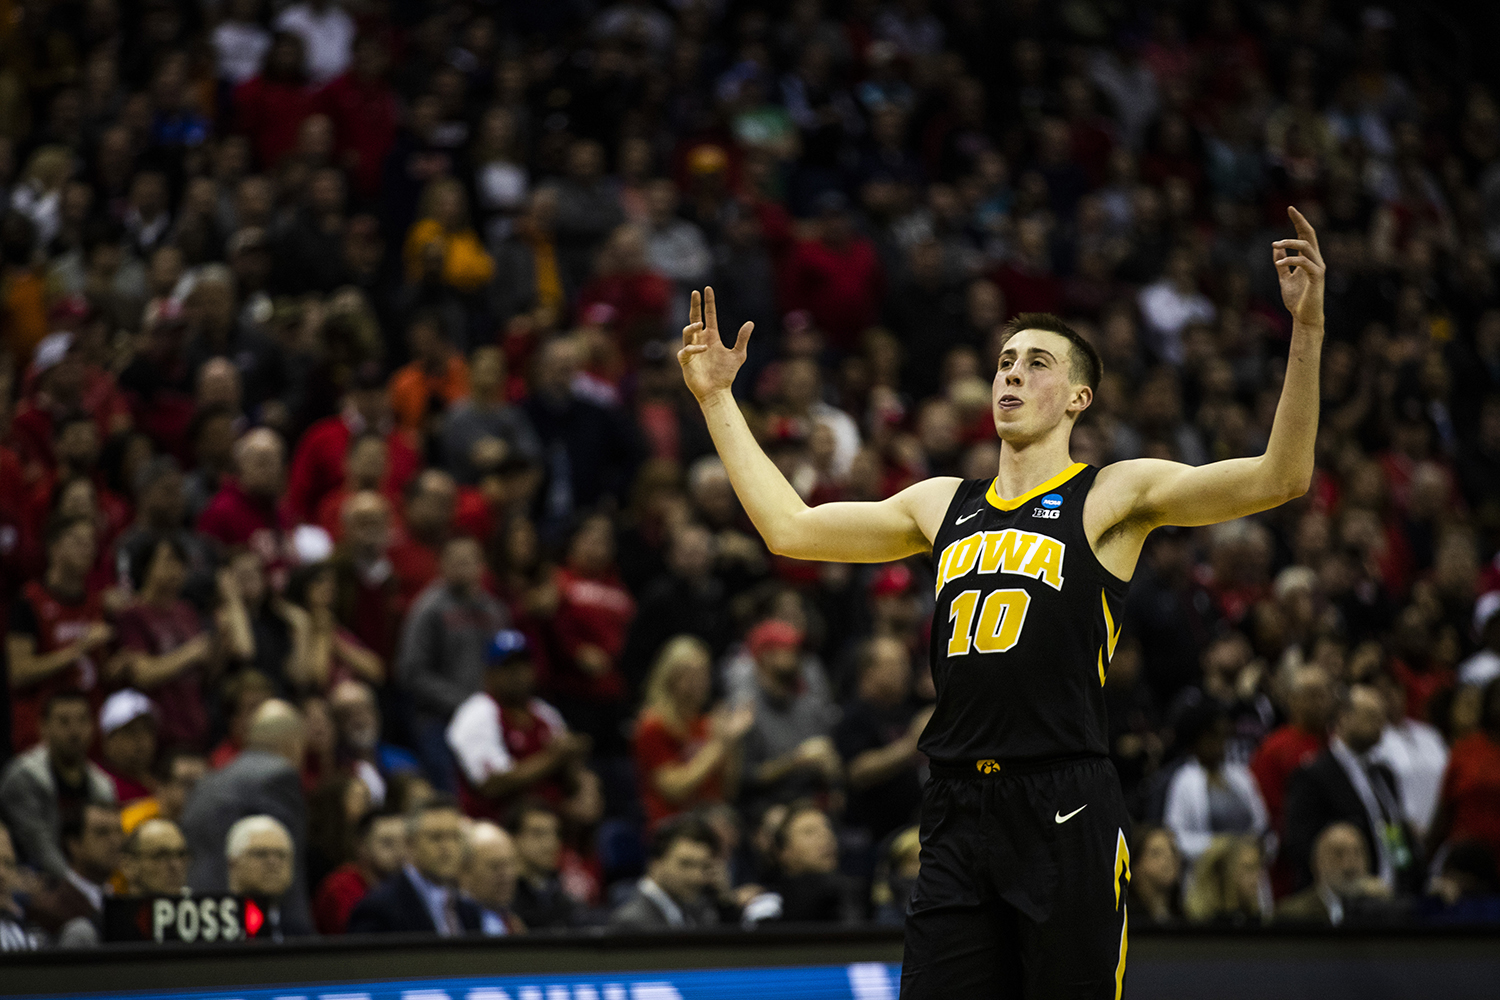 Iowa guard Joe Wieskamp reacts to an Iowa basket during the NCAA game against Cincinnati at Nationwide Arena on Friday, March 22, 2019. The Hawkeyes defeated the Bearcats 79-72.